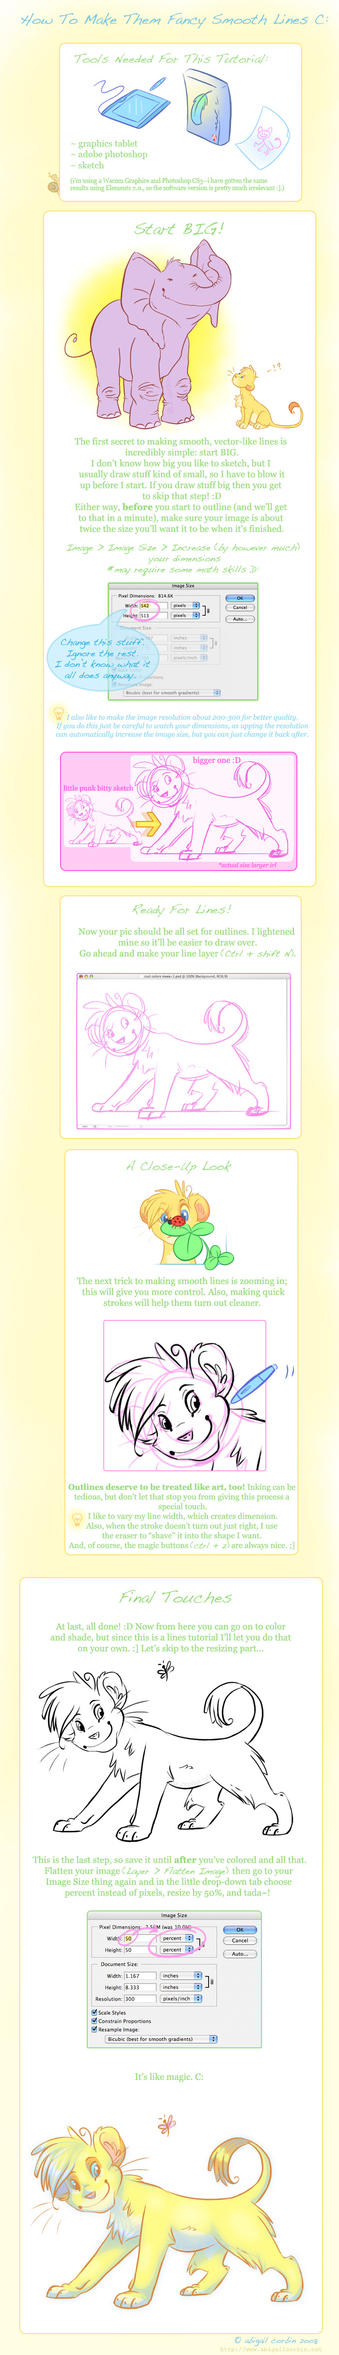 Digital Drawing Smooth Lines : Smooth lines tutorial by simbagirl on deviantart